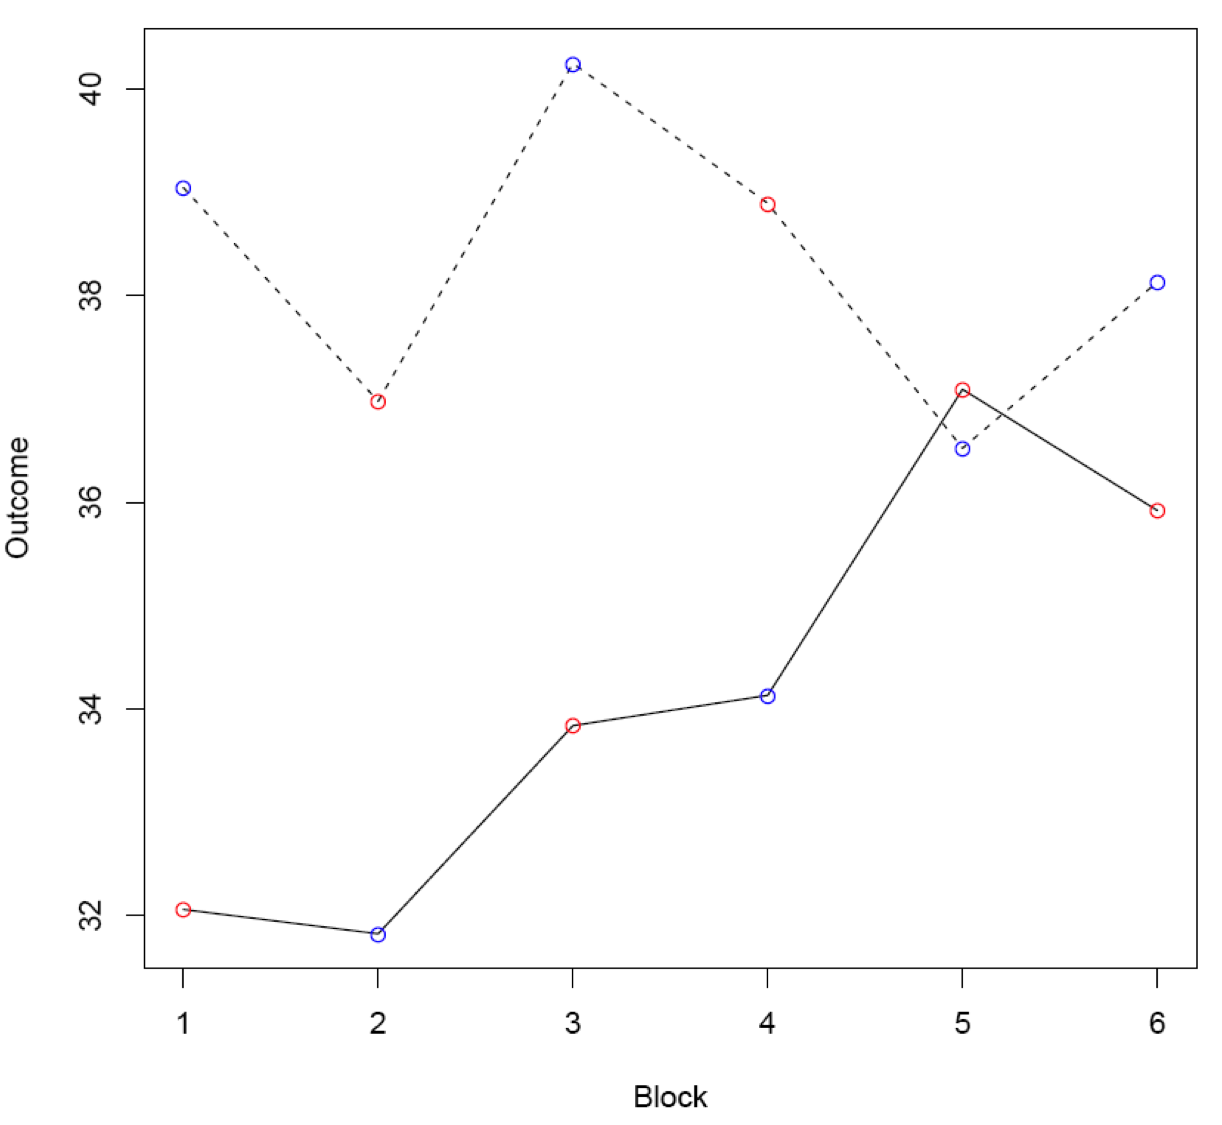 Figure 4-1 plots data from a simulated N-of-1 trial. Two line plots (one indicated by a solid line and the other by a dotted line) describe outcomes for two treatments measured at each of 6 blocks. The vertical axis shows the outcome score and the horizontal axis shows the block (from 1-6). On each line, points are labeled as either red or blue. Patients receive each treatment in each block with the point labeled in red taken first. The outcome for the treatment indicated by the dotted line is generally greater than that associated with the solid line. The outcomes for the dotted line start at about 39 and stay between 37 and 39. The outcomes for the solid line start at 32 and rise to 37 at block 5 before dropping to 36 at block 6. The lines cross briefly at block 5.